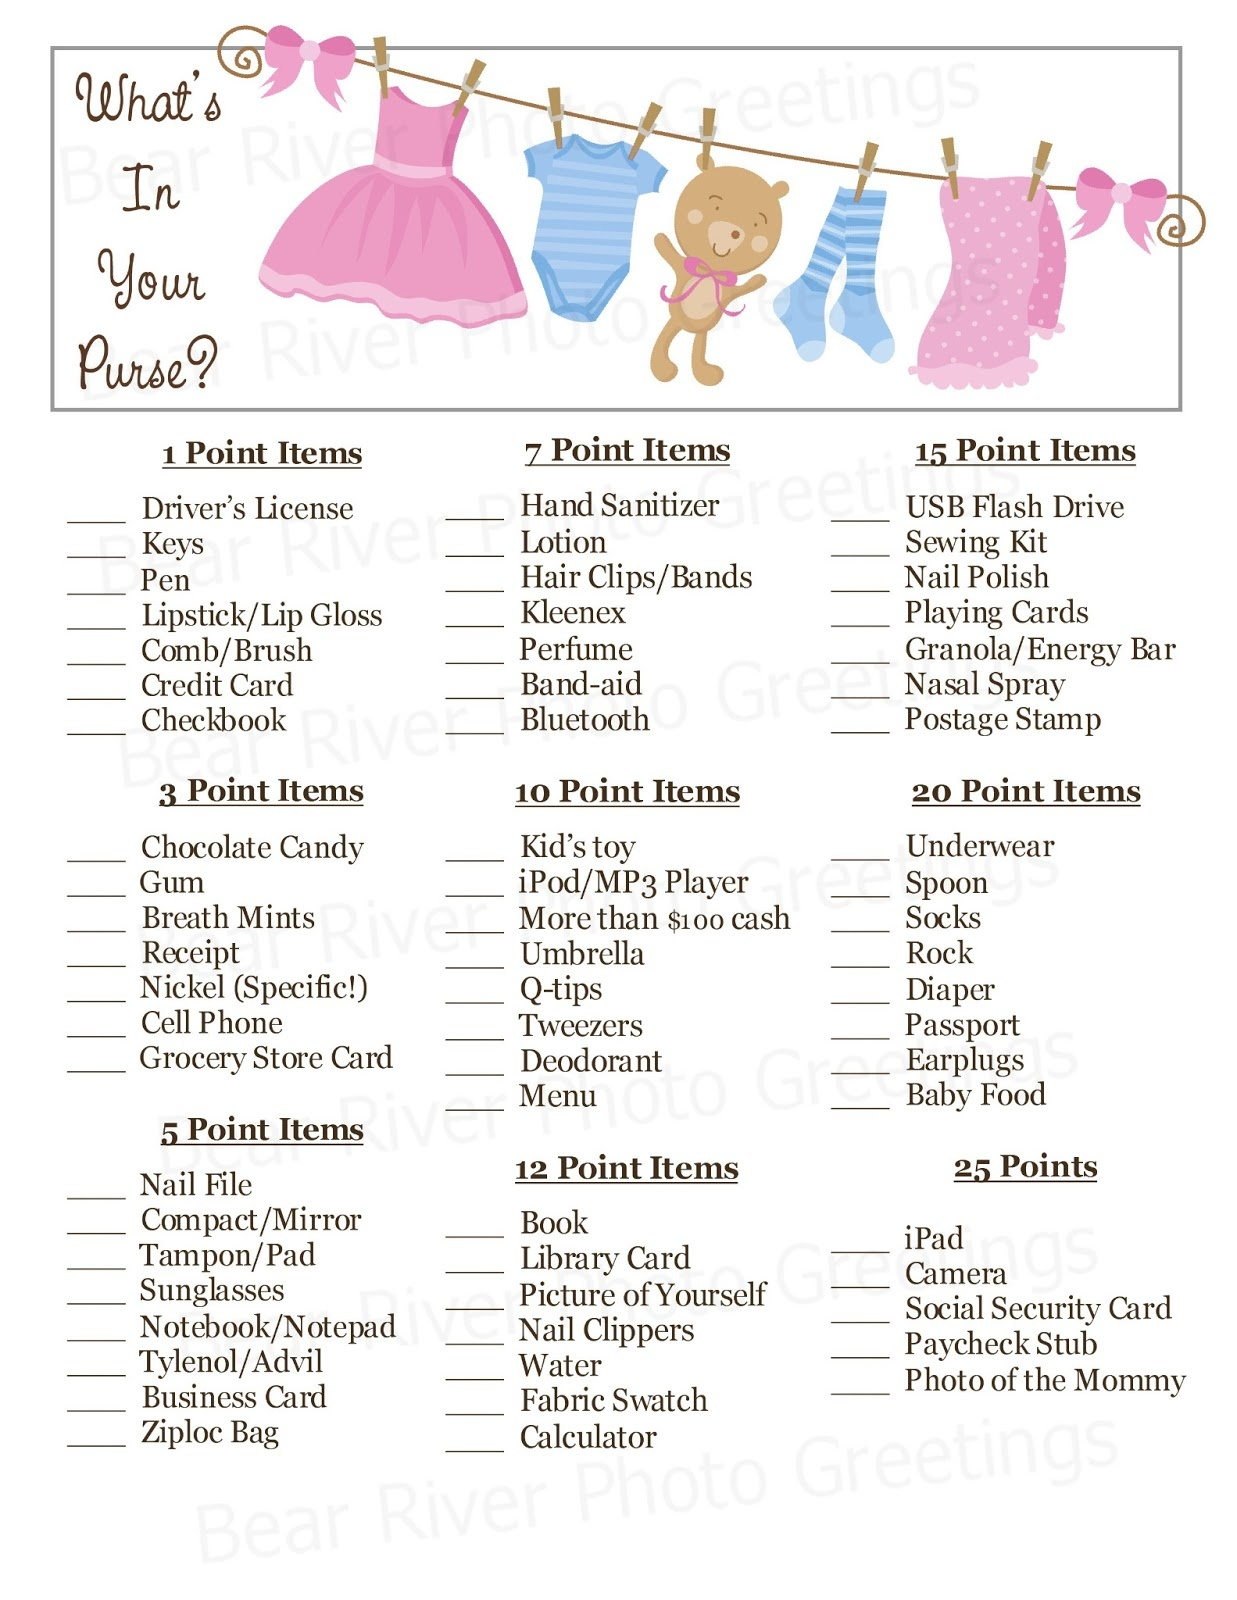 Bear River Photo Greetings: New! Instant Download Baby Shower Games - Free Printable Baby Shower Games What's In Your Purse